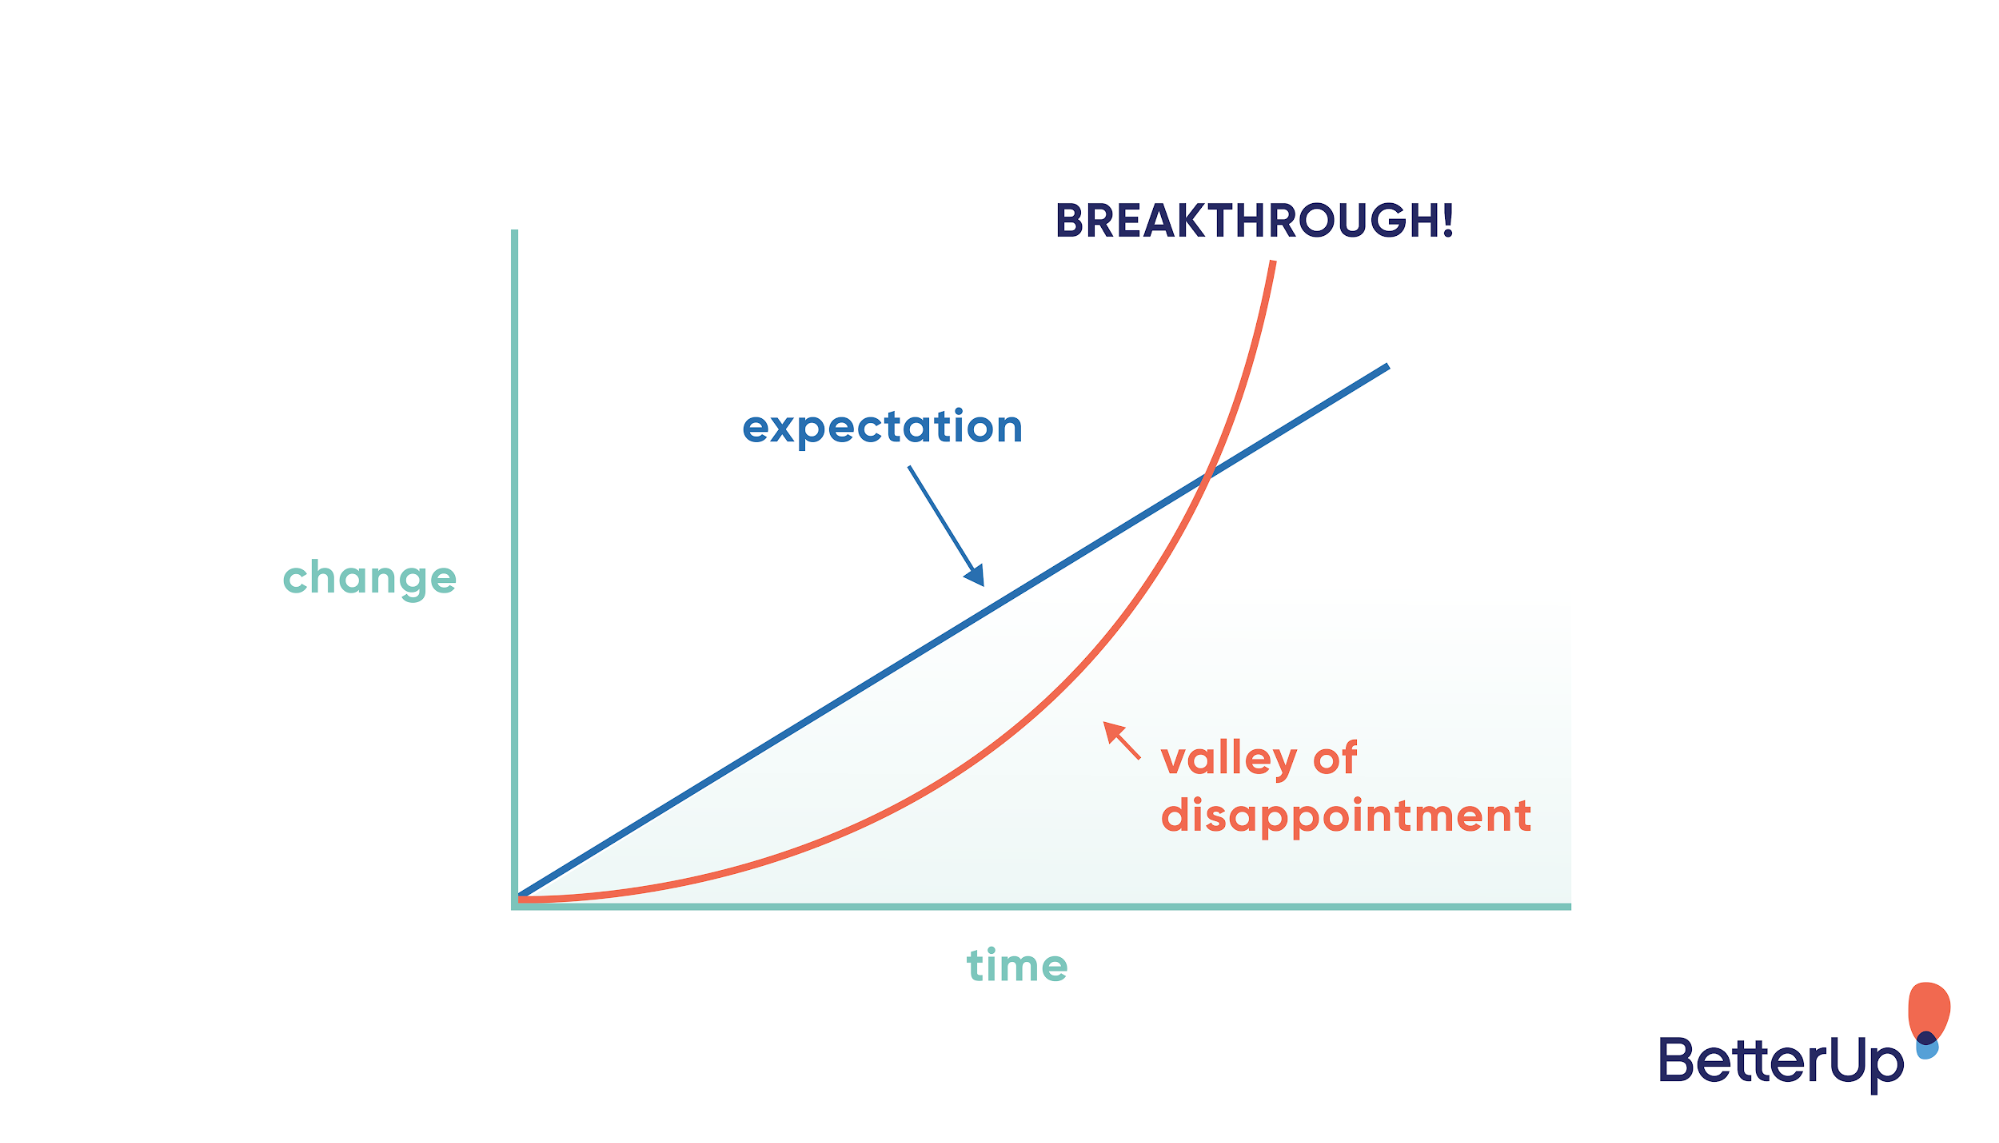 the valley of disappointment - how to deal with disappointment